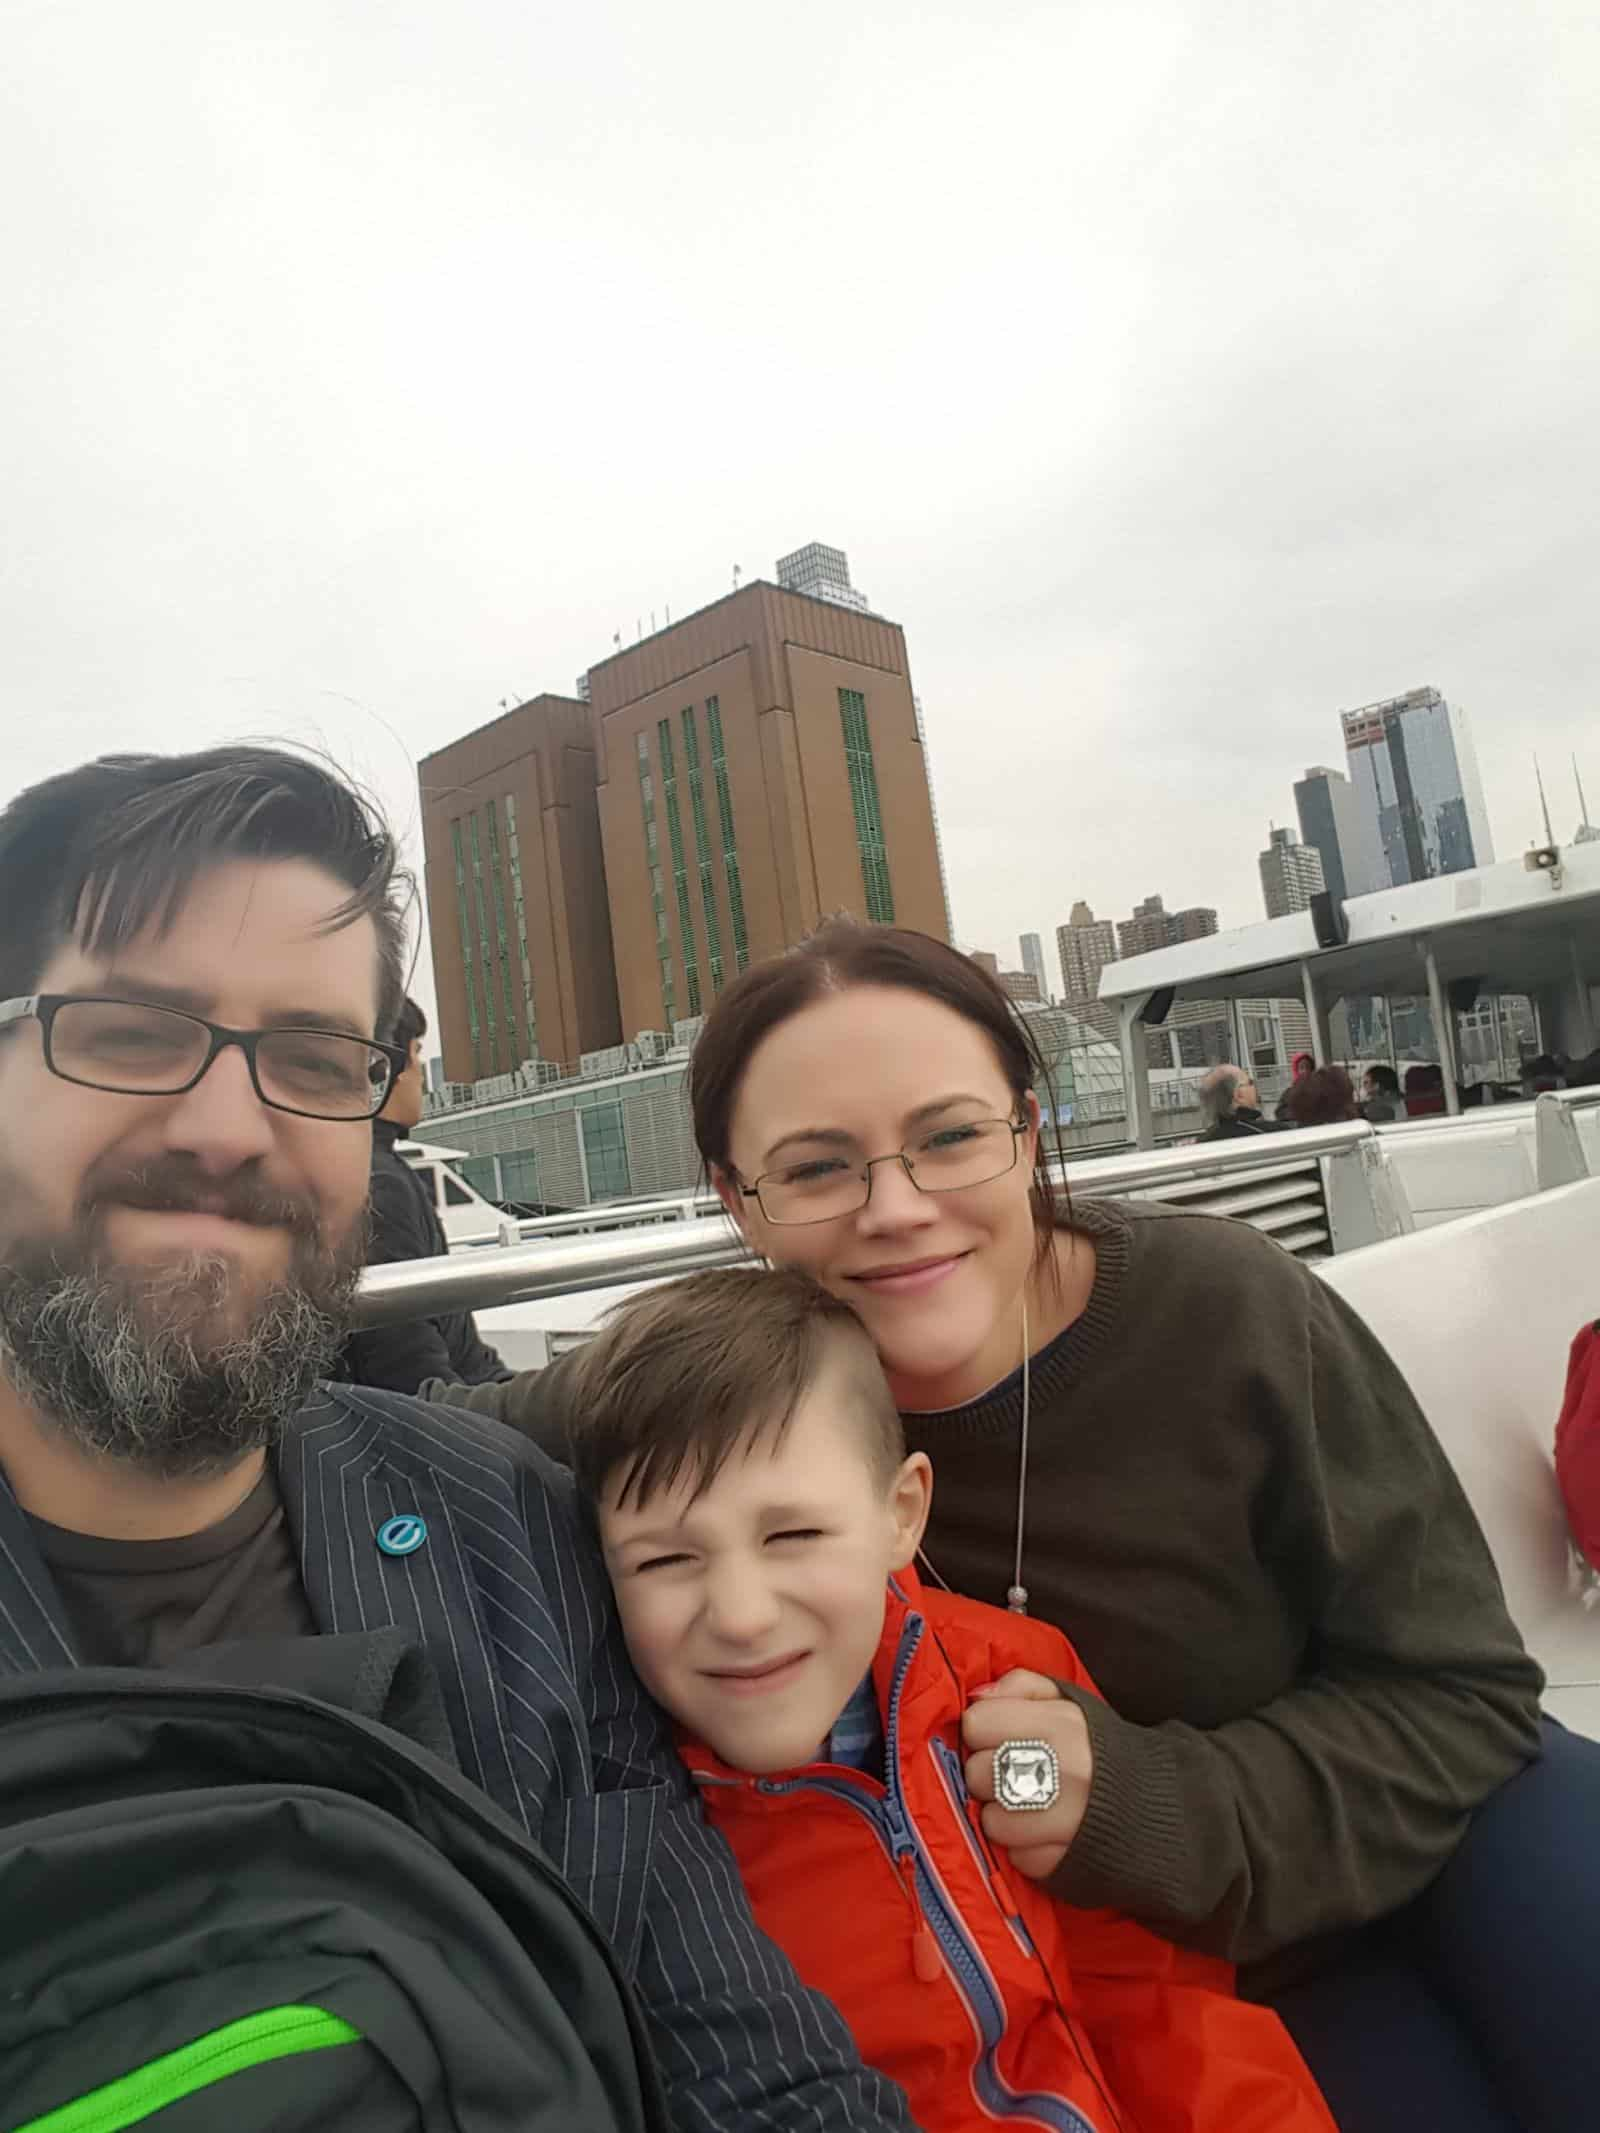 Hudson River Cruise in March